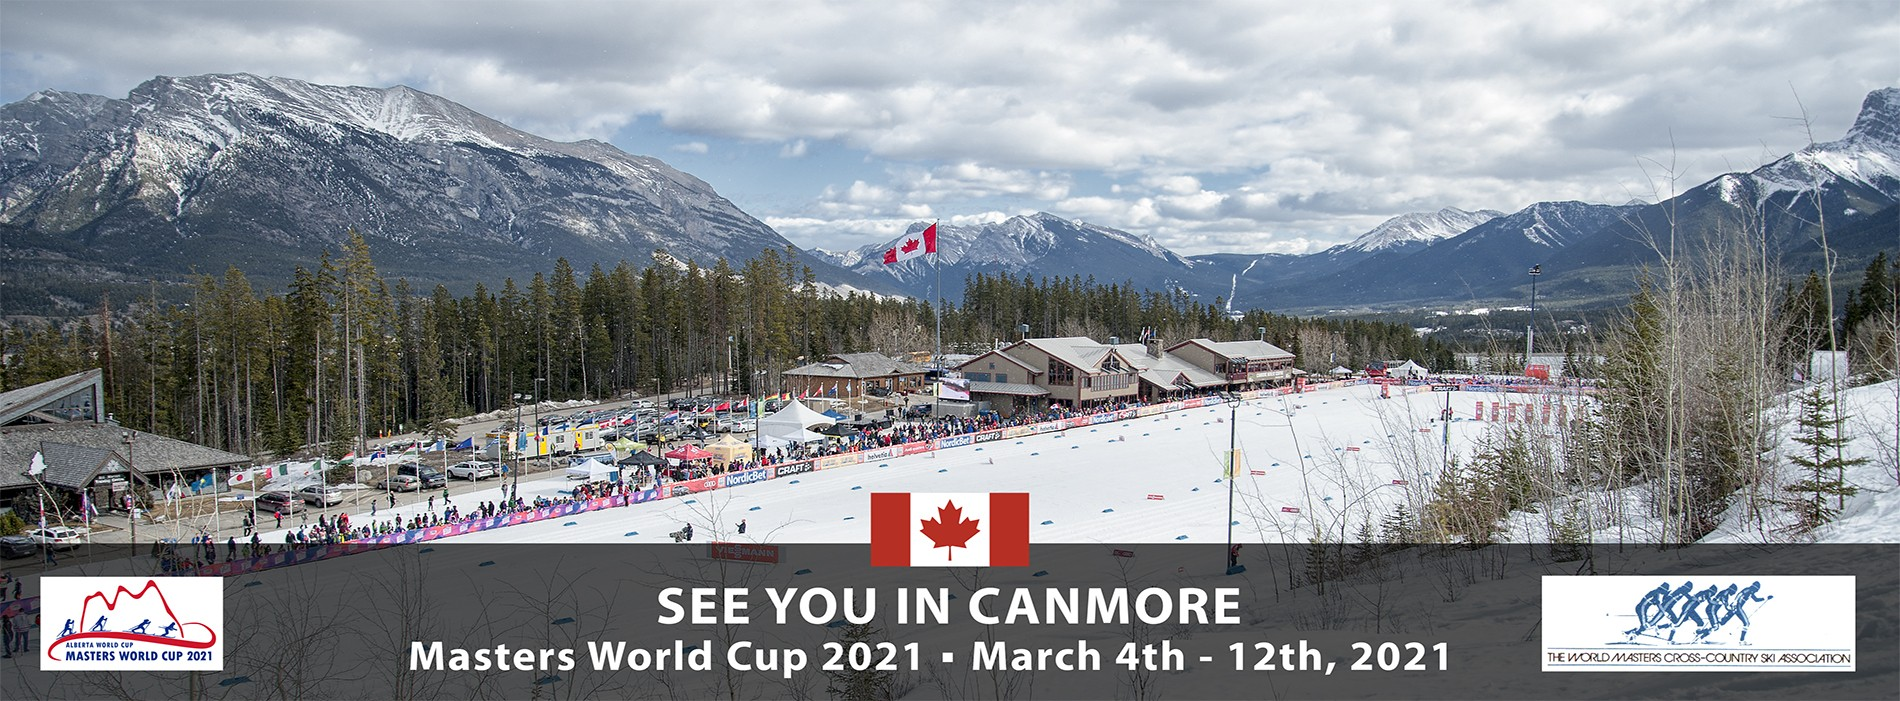 Masters World Cup Skiing 2021 Canmore Alberta